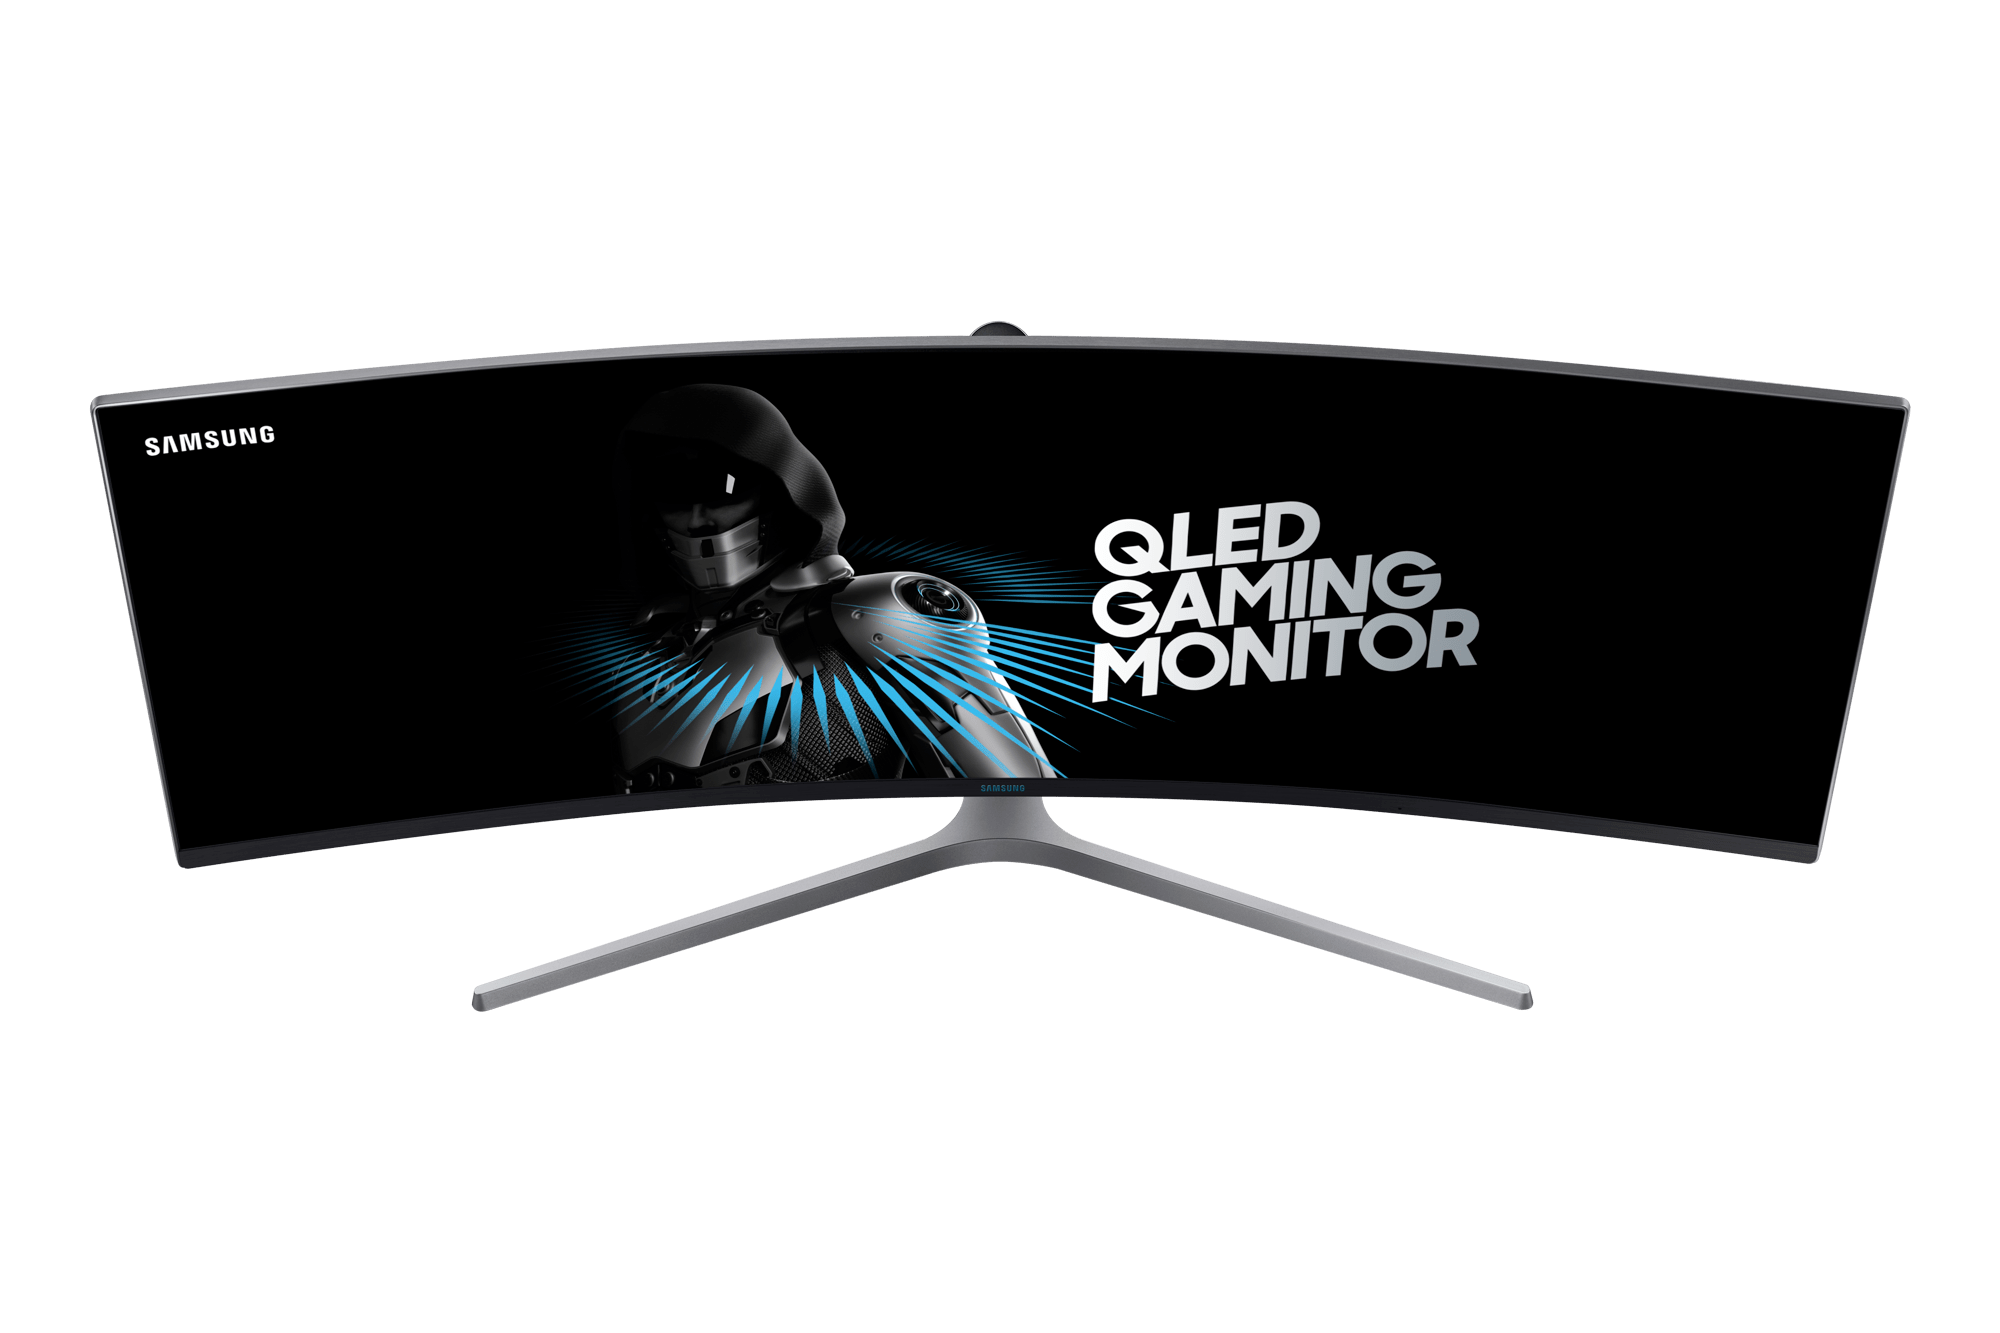 Samsung taking gaming to the next level with its new HDR QLED Gaming